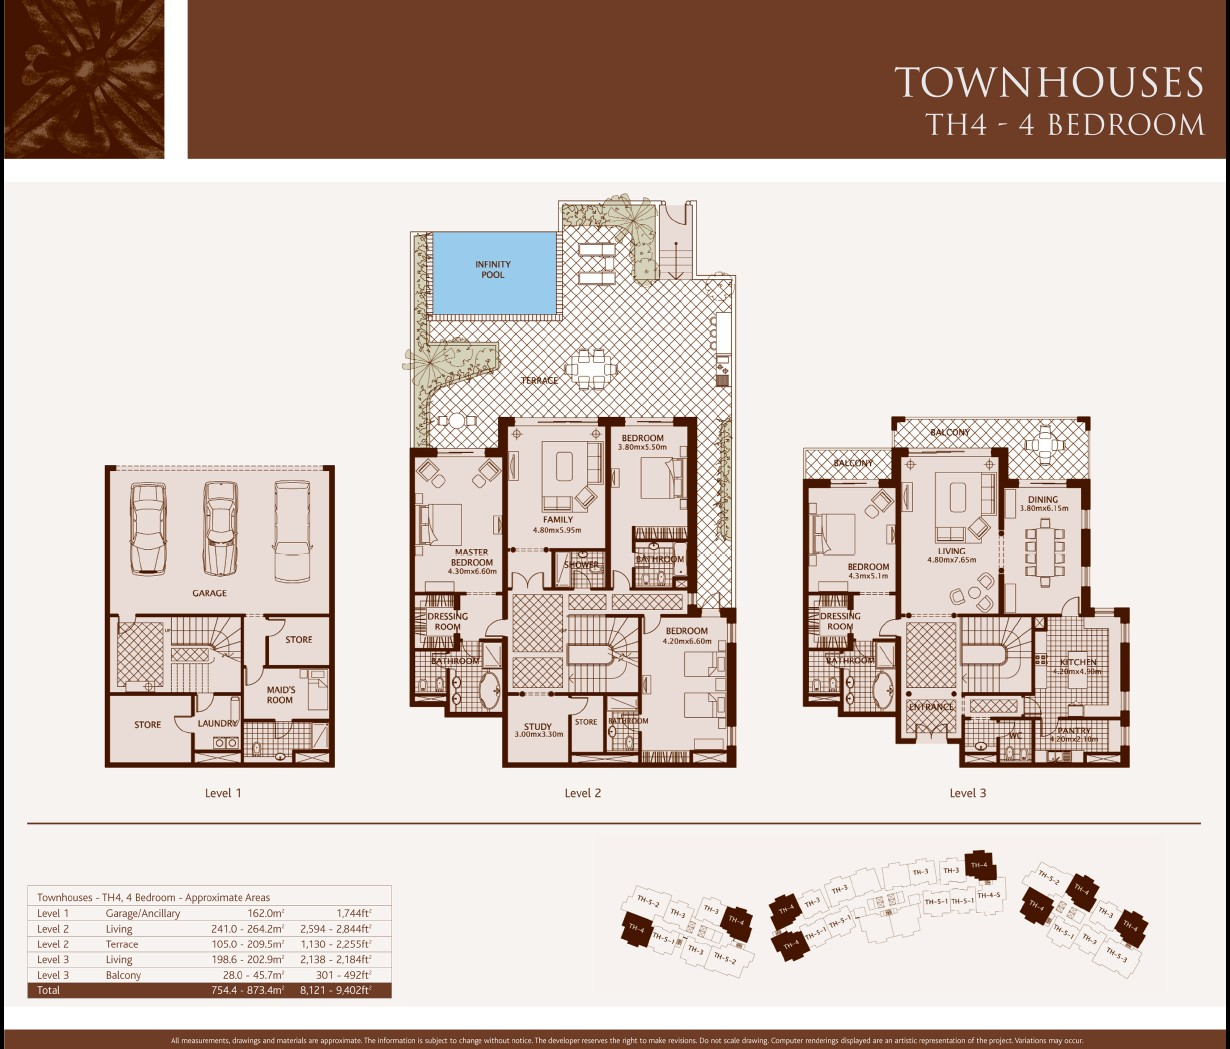 Townhouse floor plans 3 story townhouse floor plans for Townhouse layout 3 bedrooms